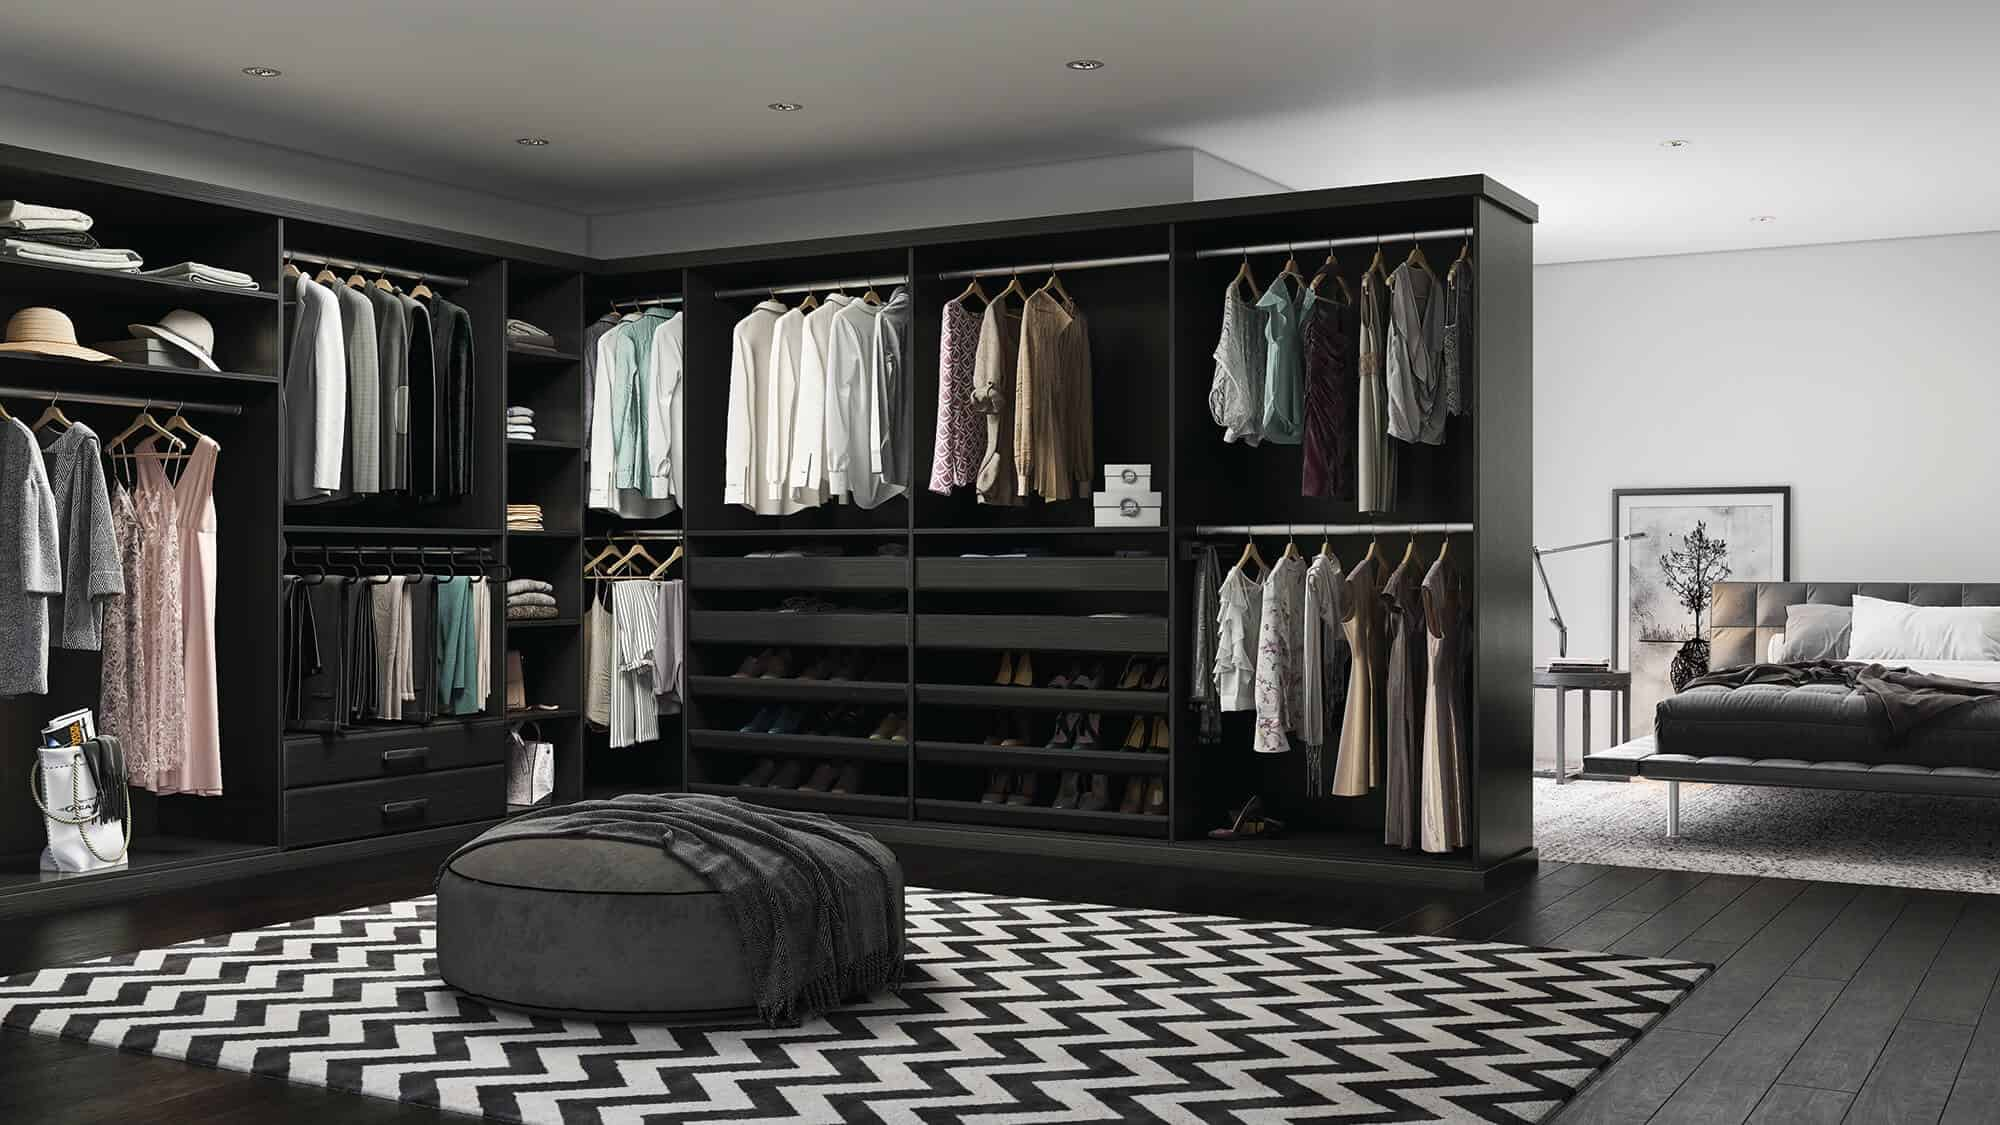 A walk-in closet with on-trend black and white decor.